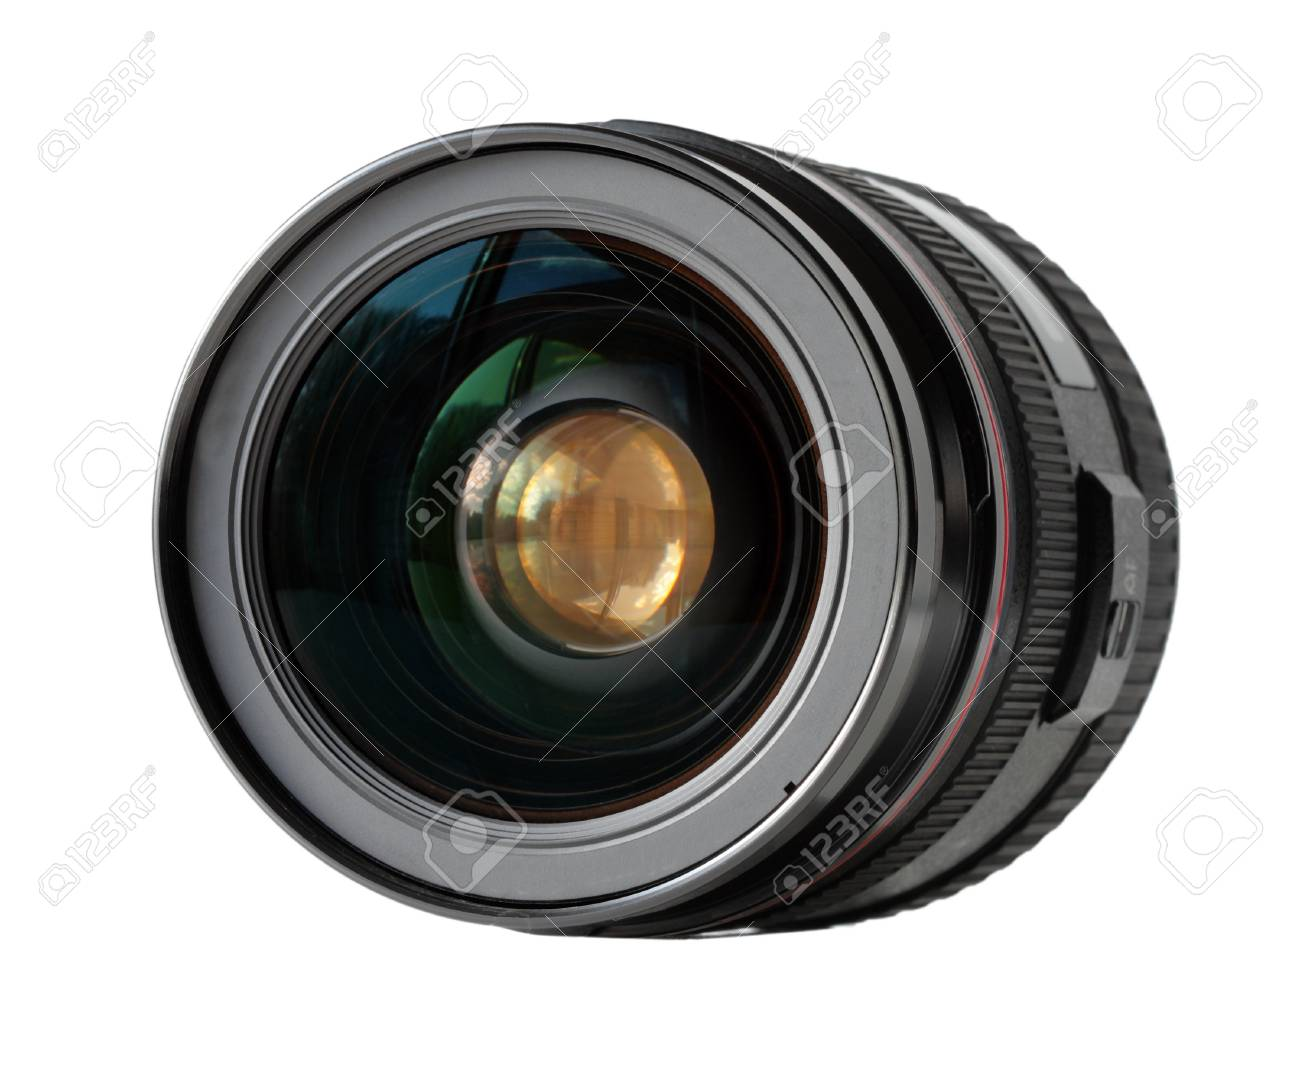 Wide angle lens isolated on white background Stock Photo - 4245640